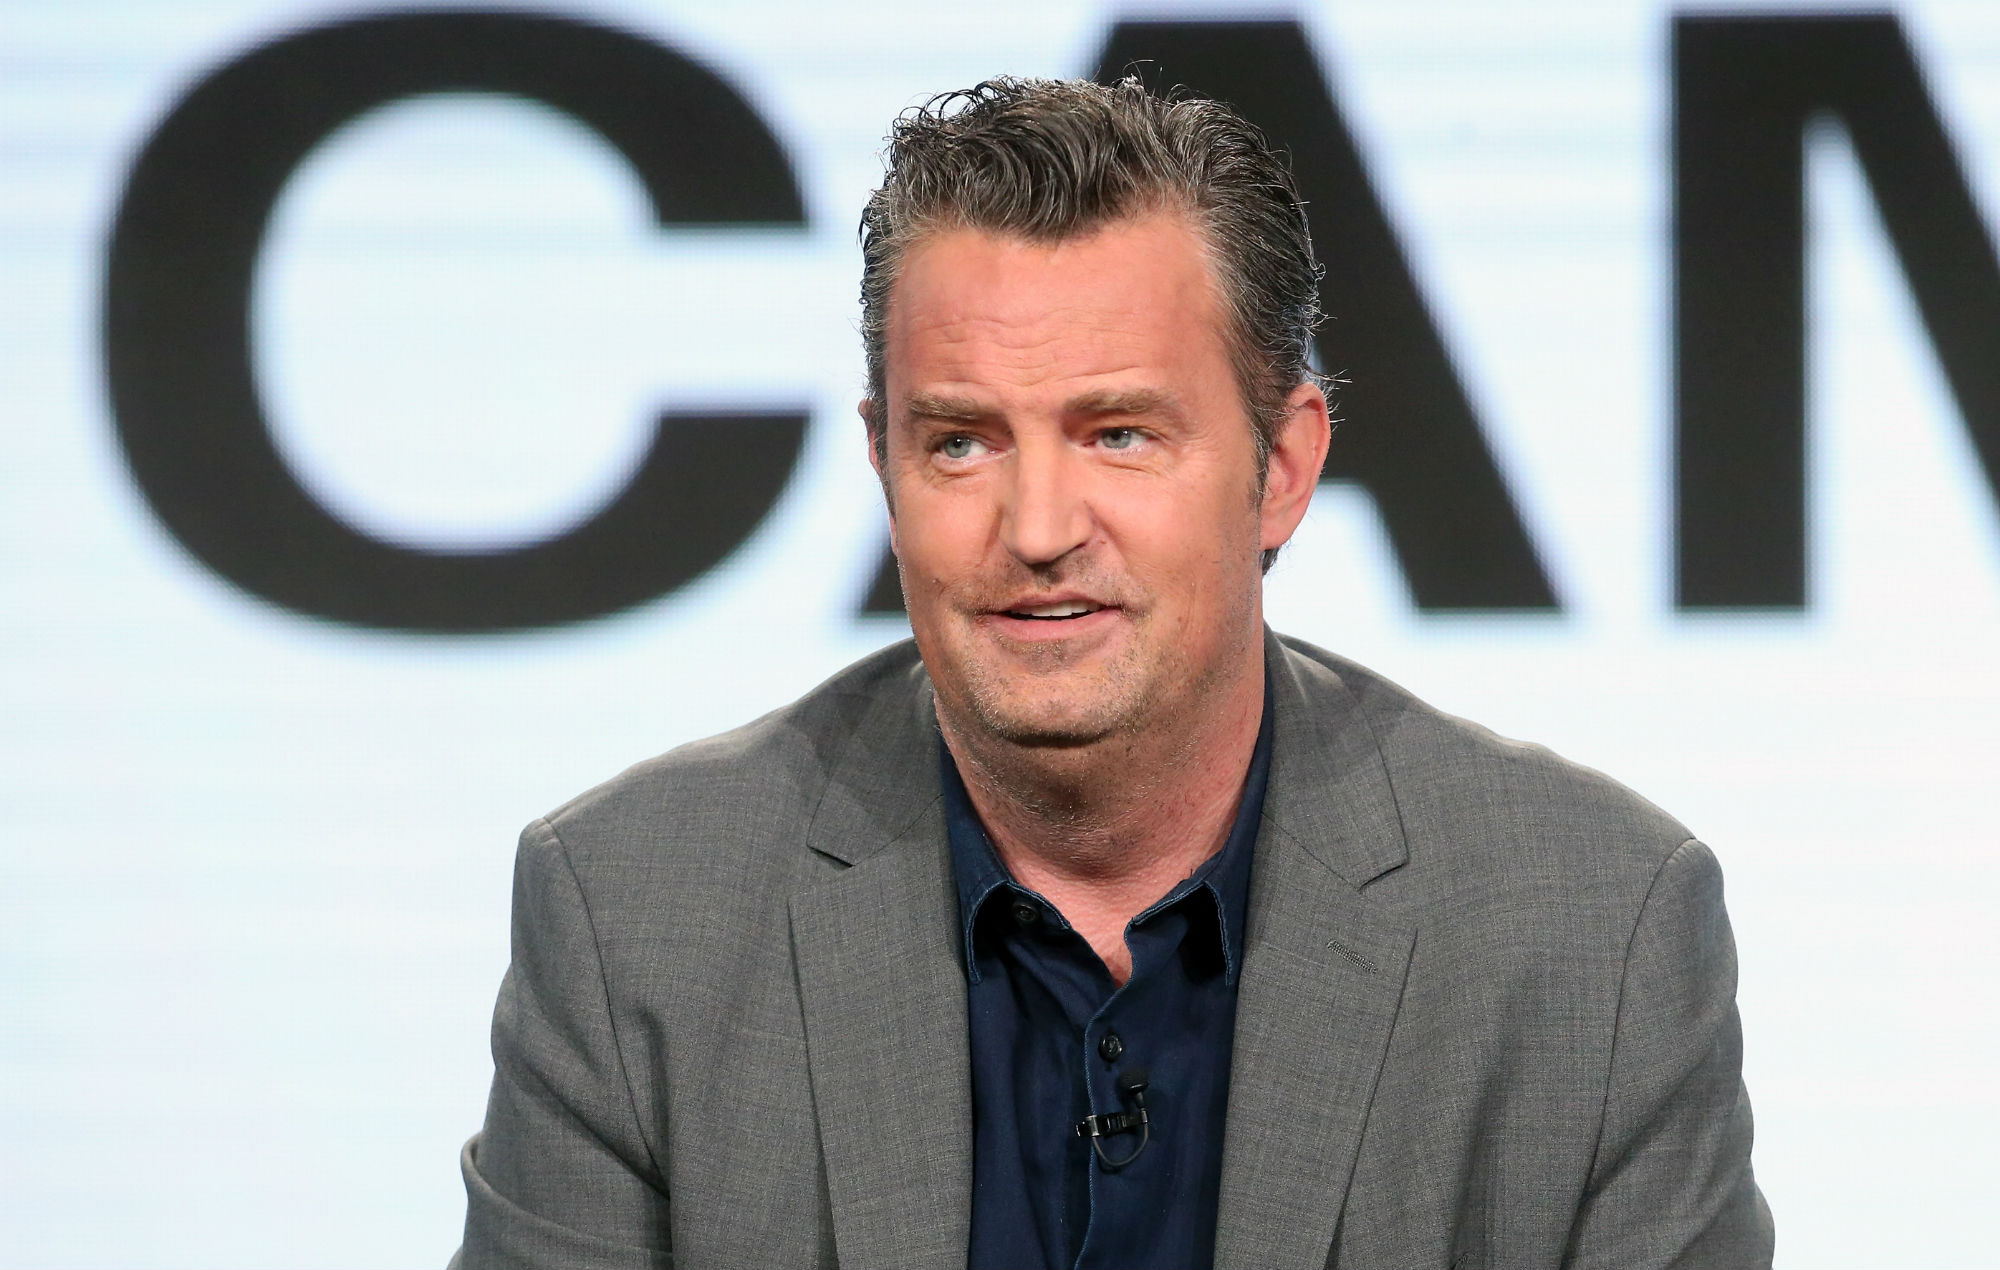 Friends Star Matthew Perry Teases Big News Coming Nme